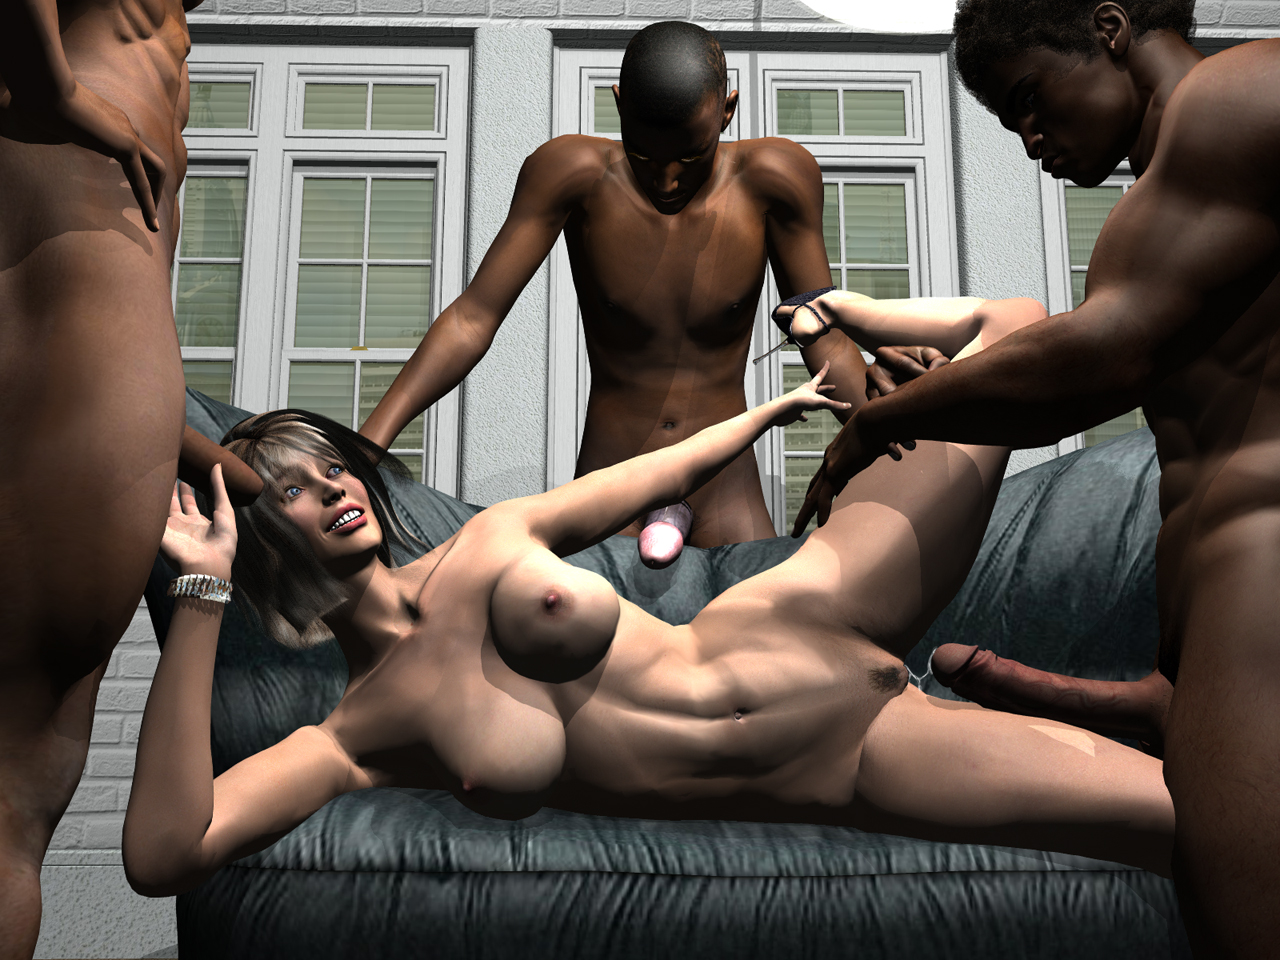 Free 3d porn blood videos nude scenes